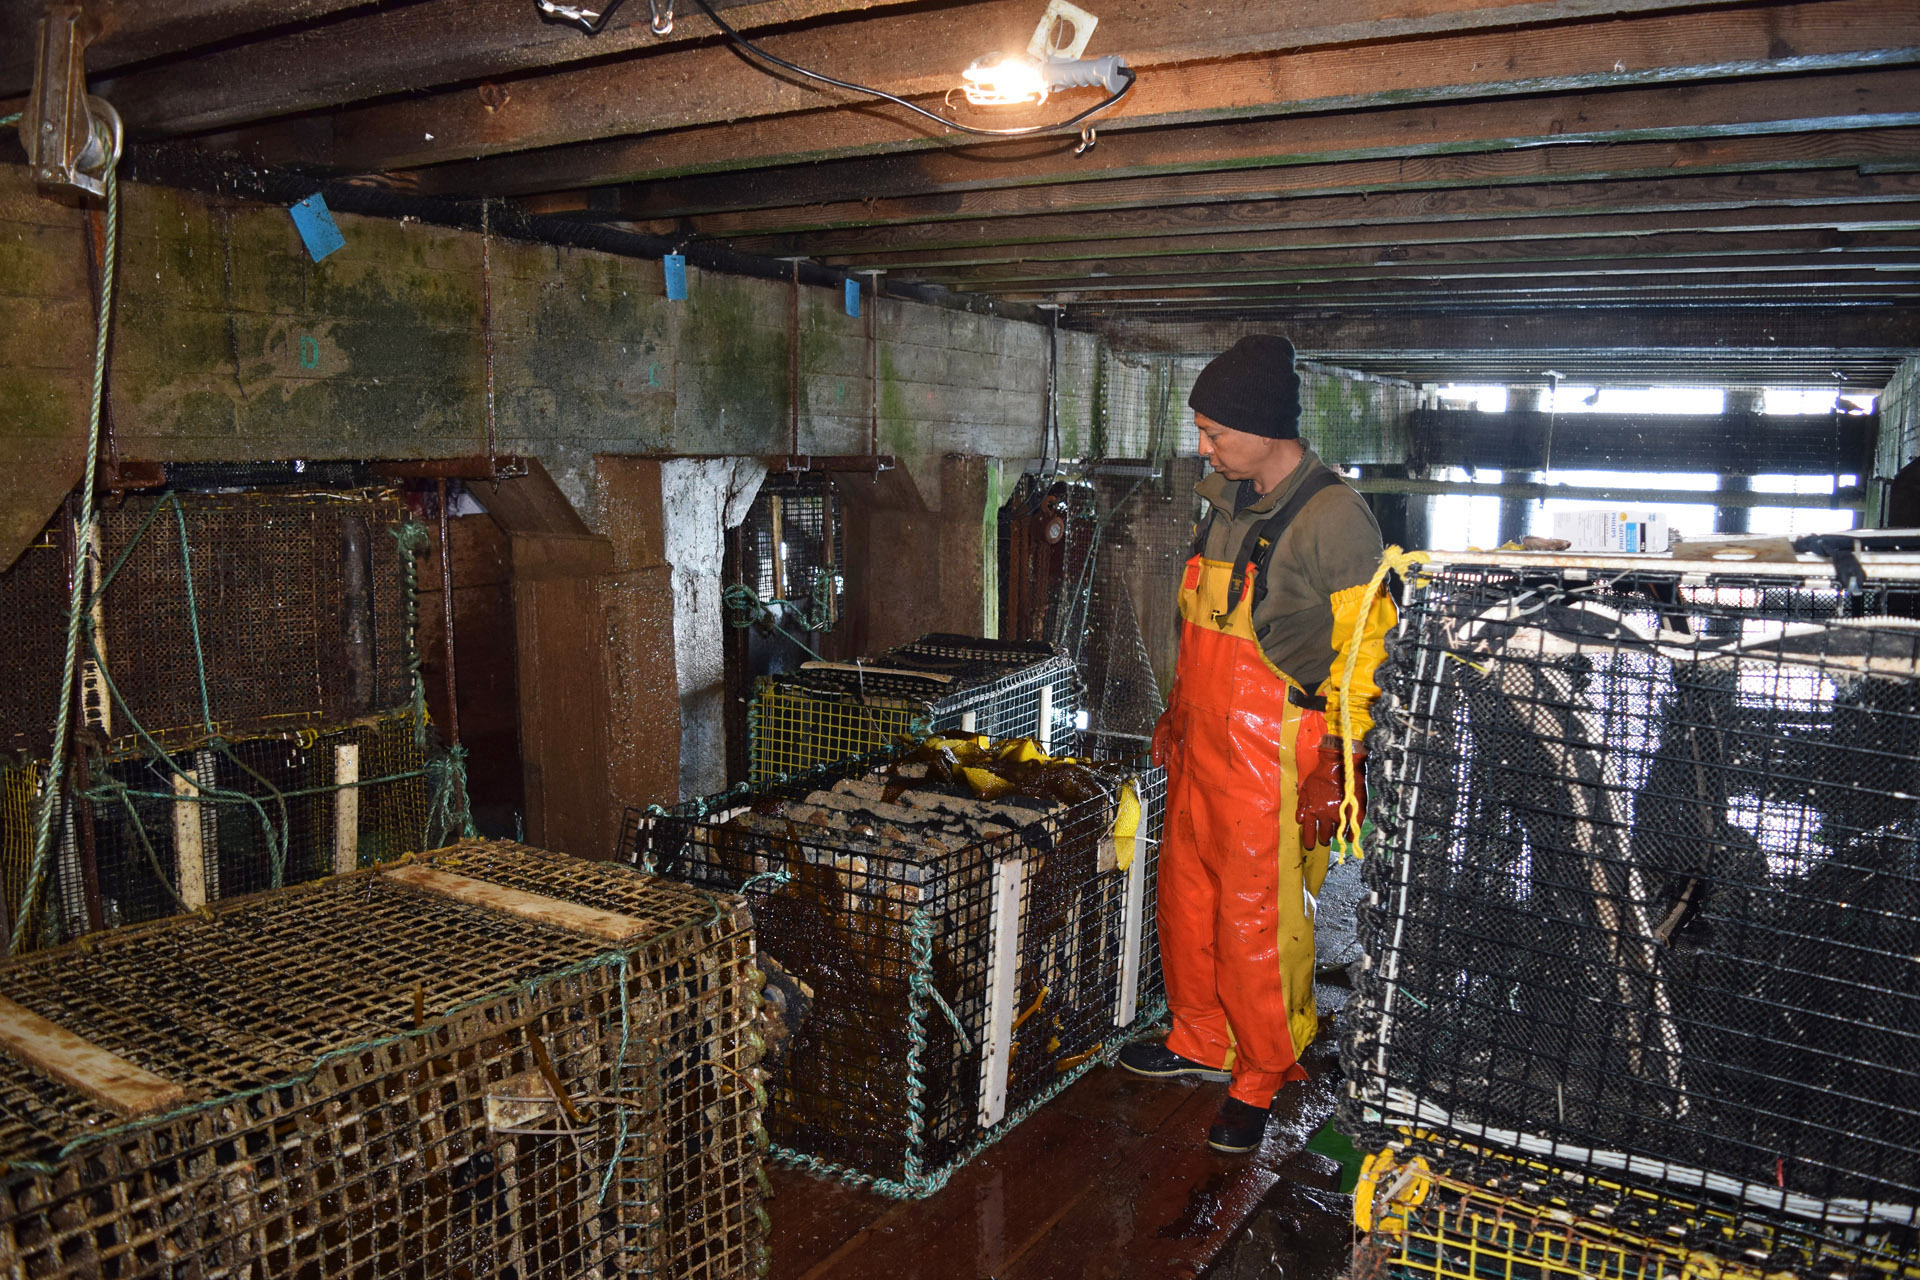 The sub-pier abalone farm at Monterey Abalone Company uses a system of ropes and pulleys to move the stacked, mollusk-filled cages in and out of the water.